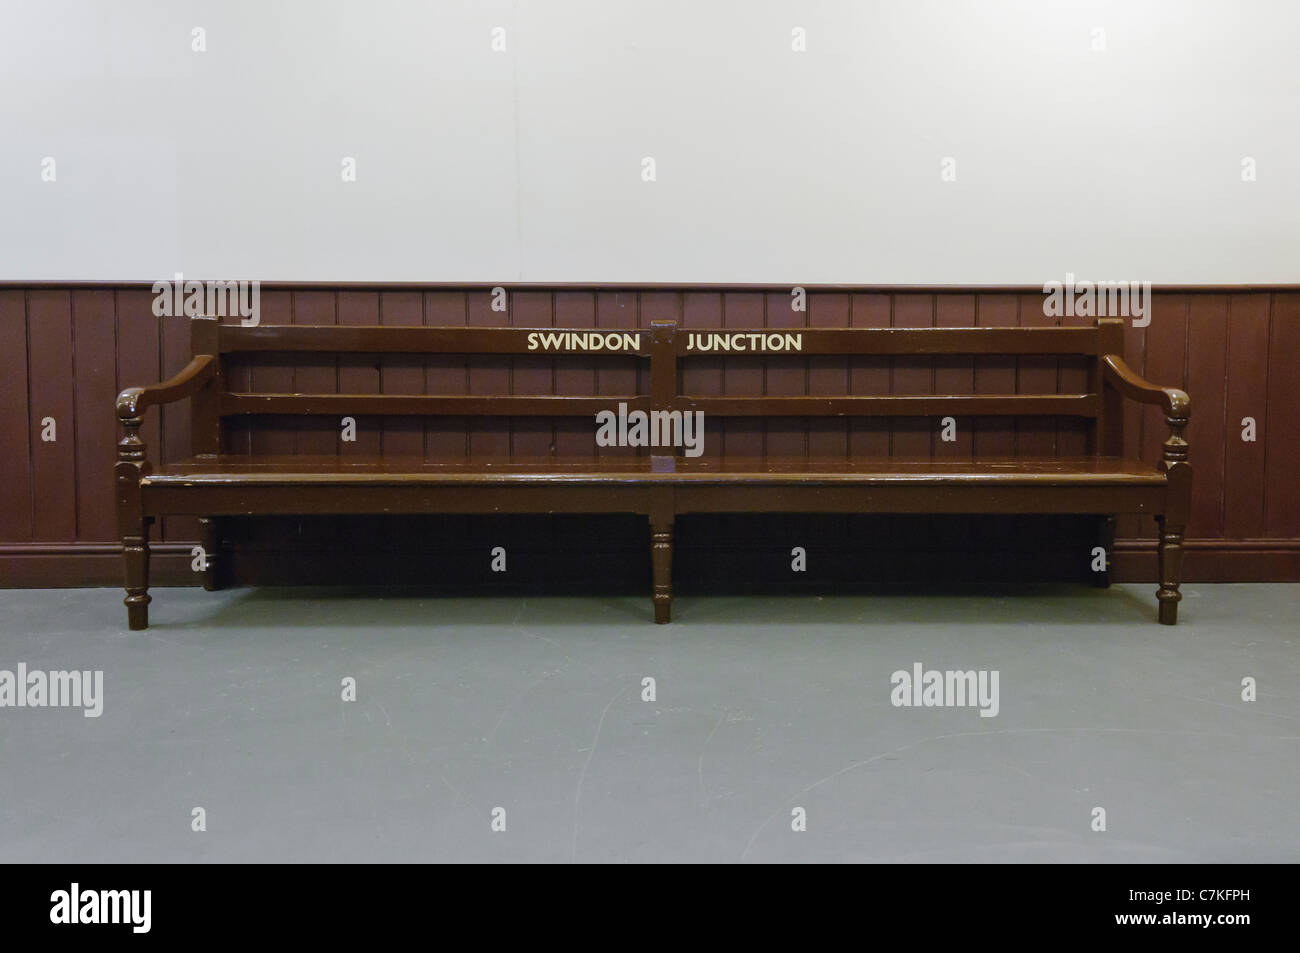 Empty bench marked for Swindon junction railway station - Stock Image